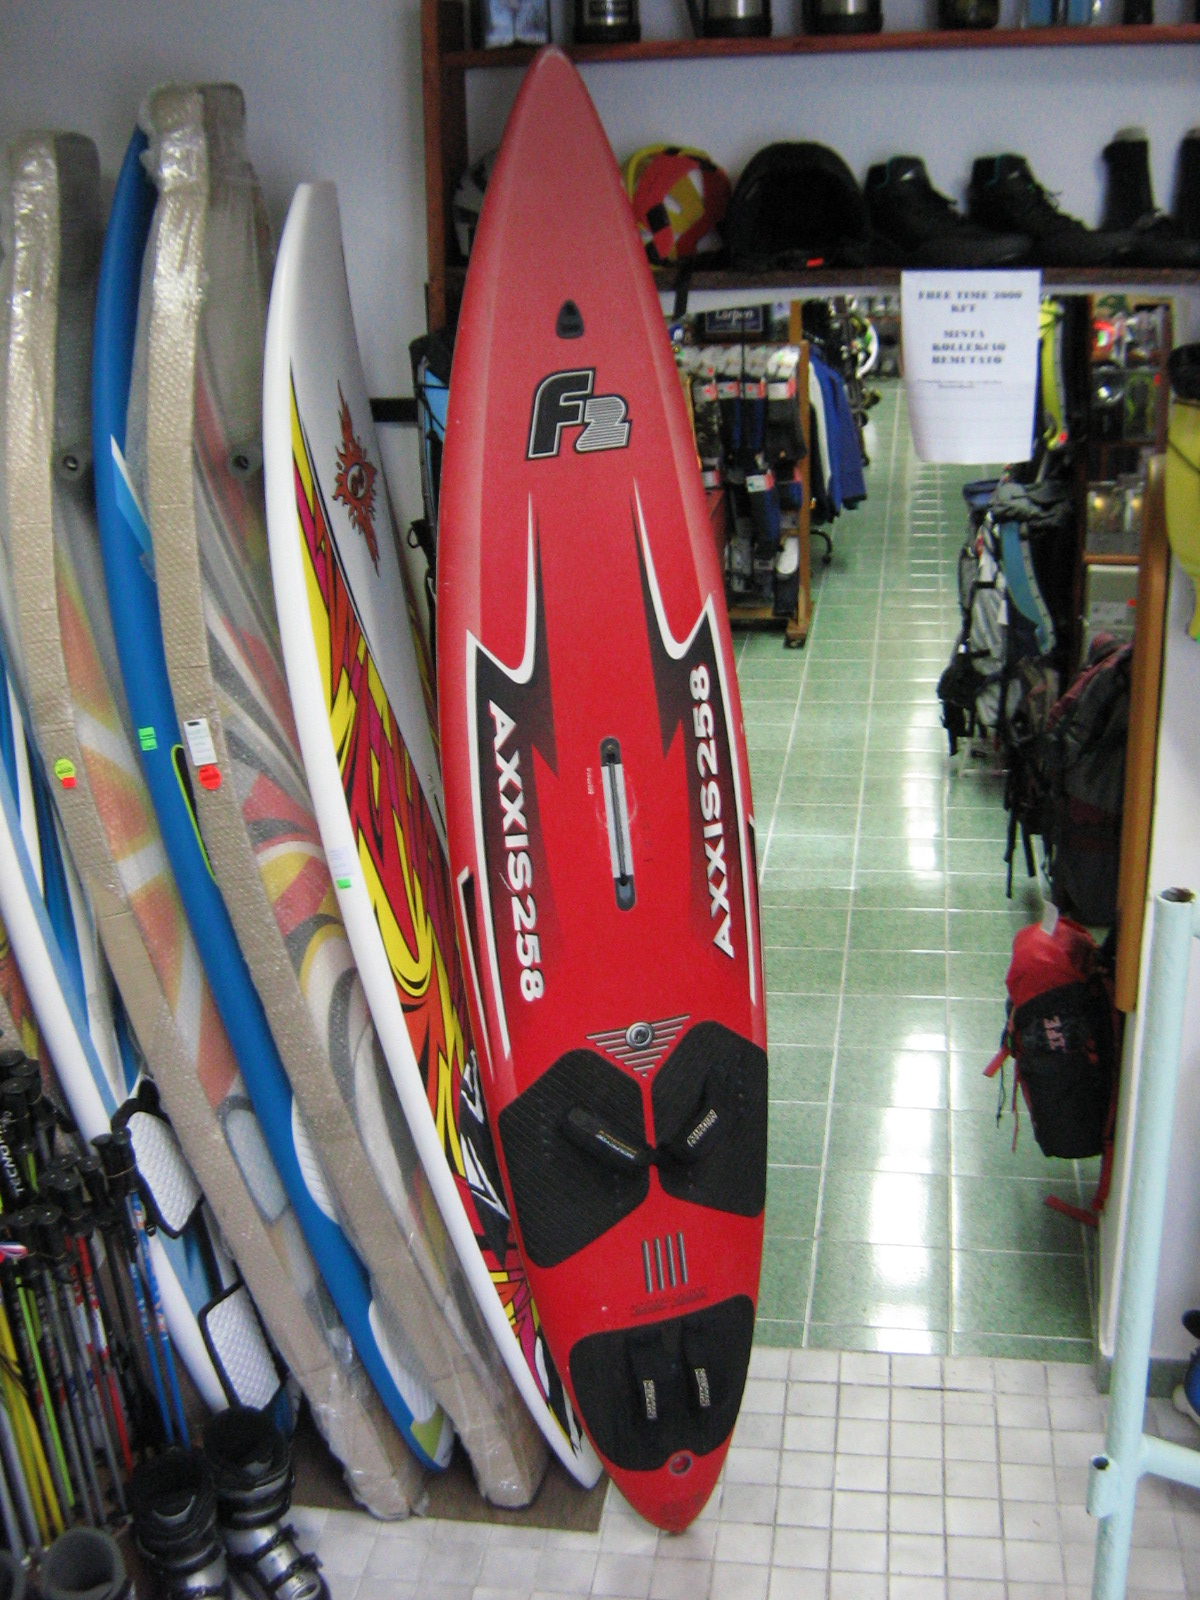 478ccc9f129c budapest windsurf Axxis 258